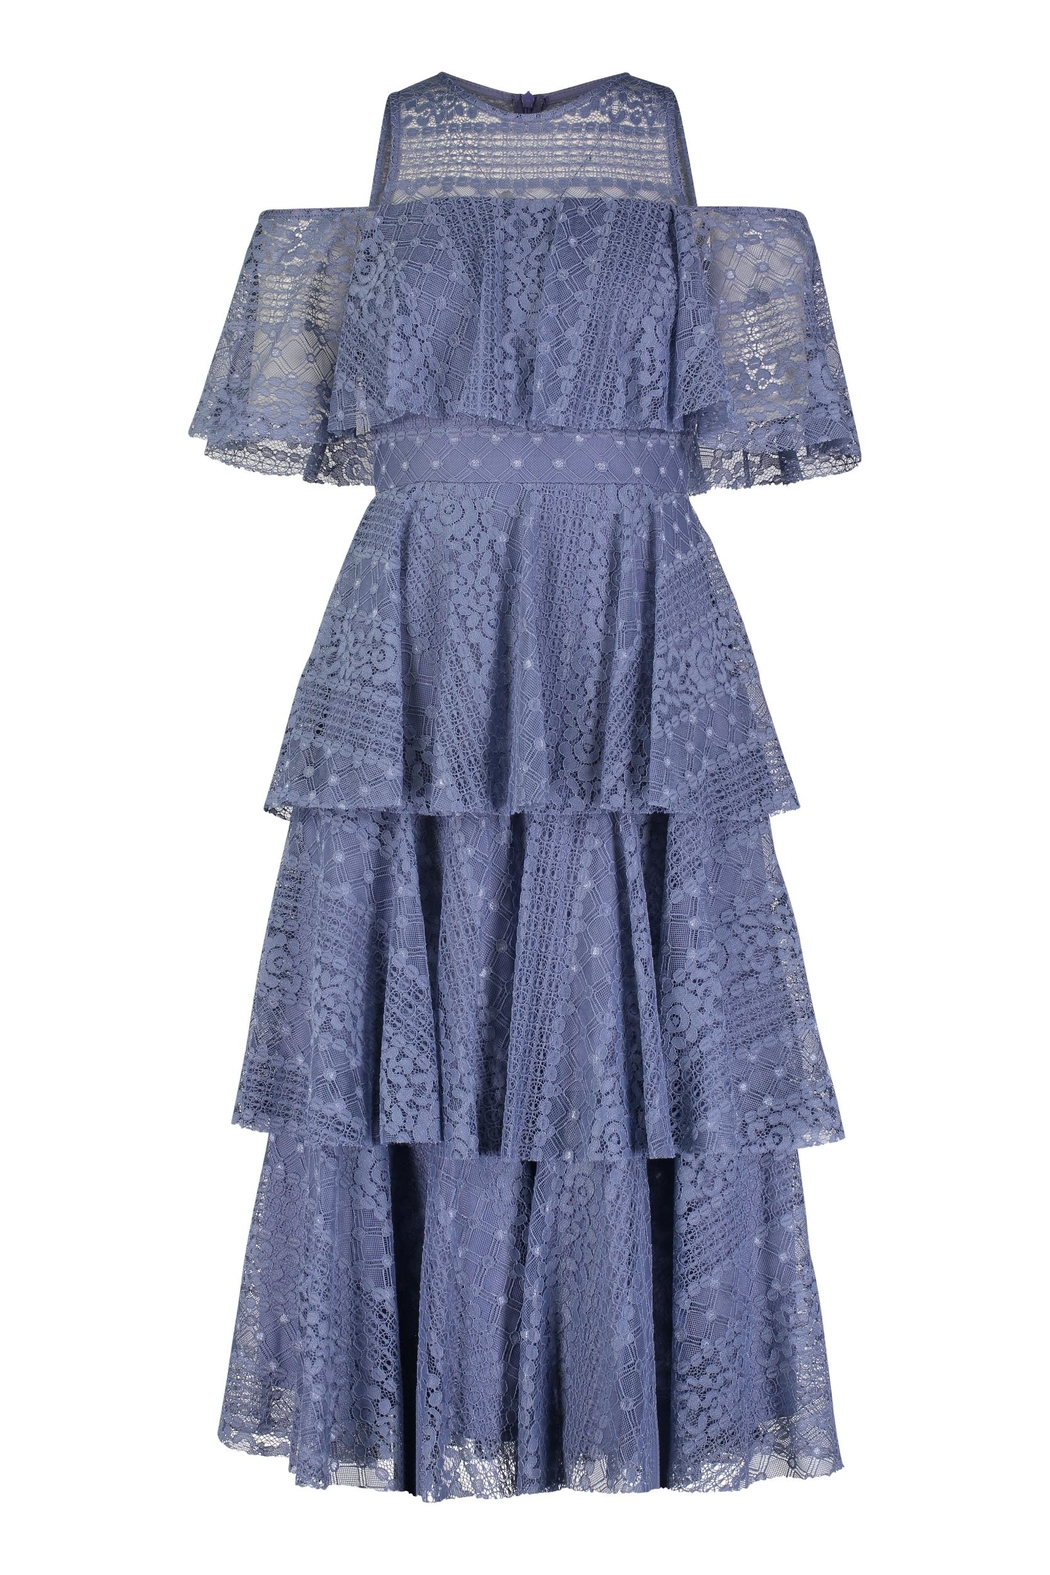 Just Me Fanny Brice Dress - Main Image